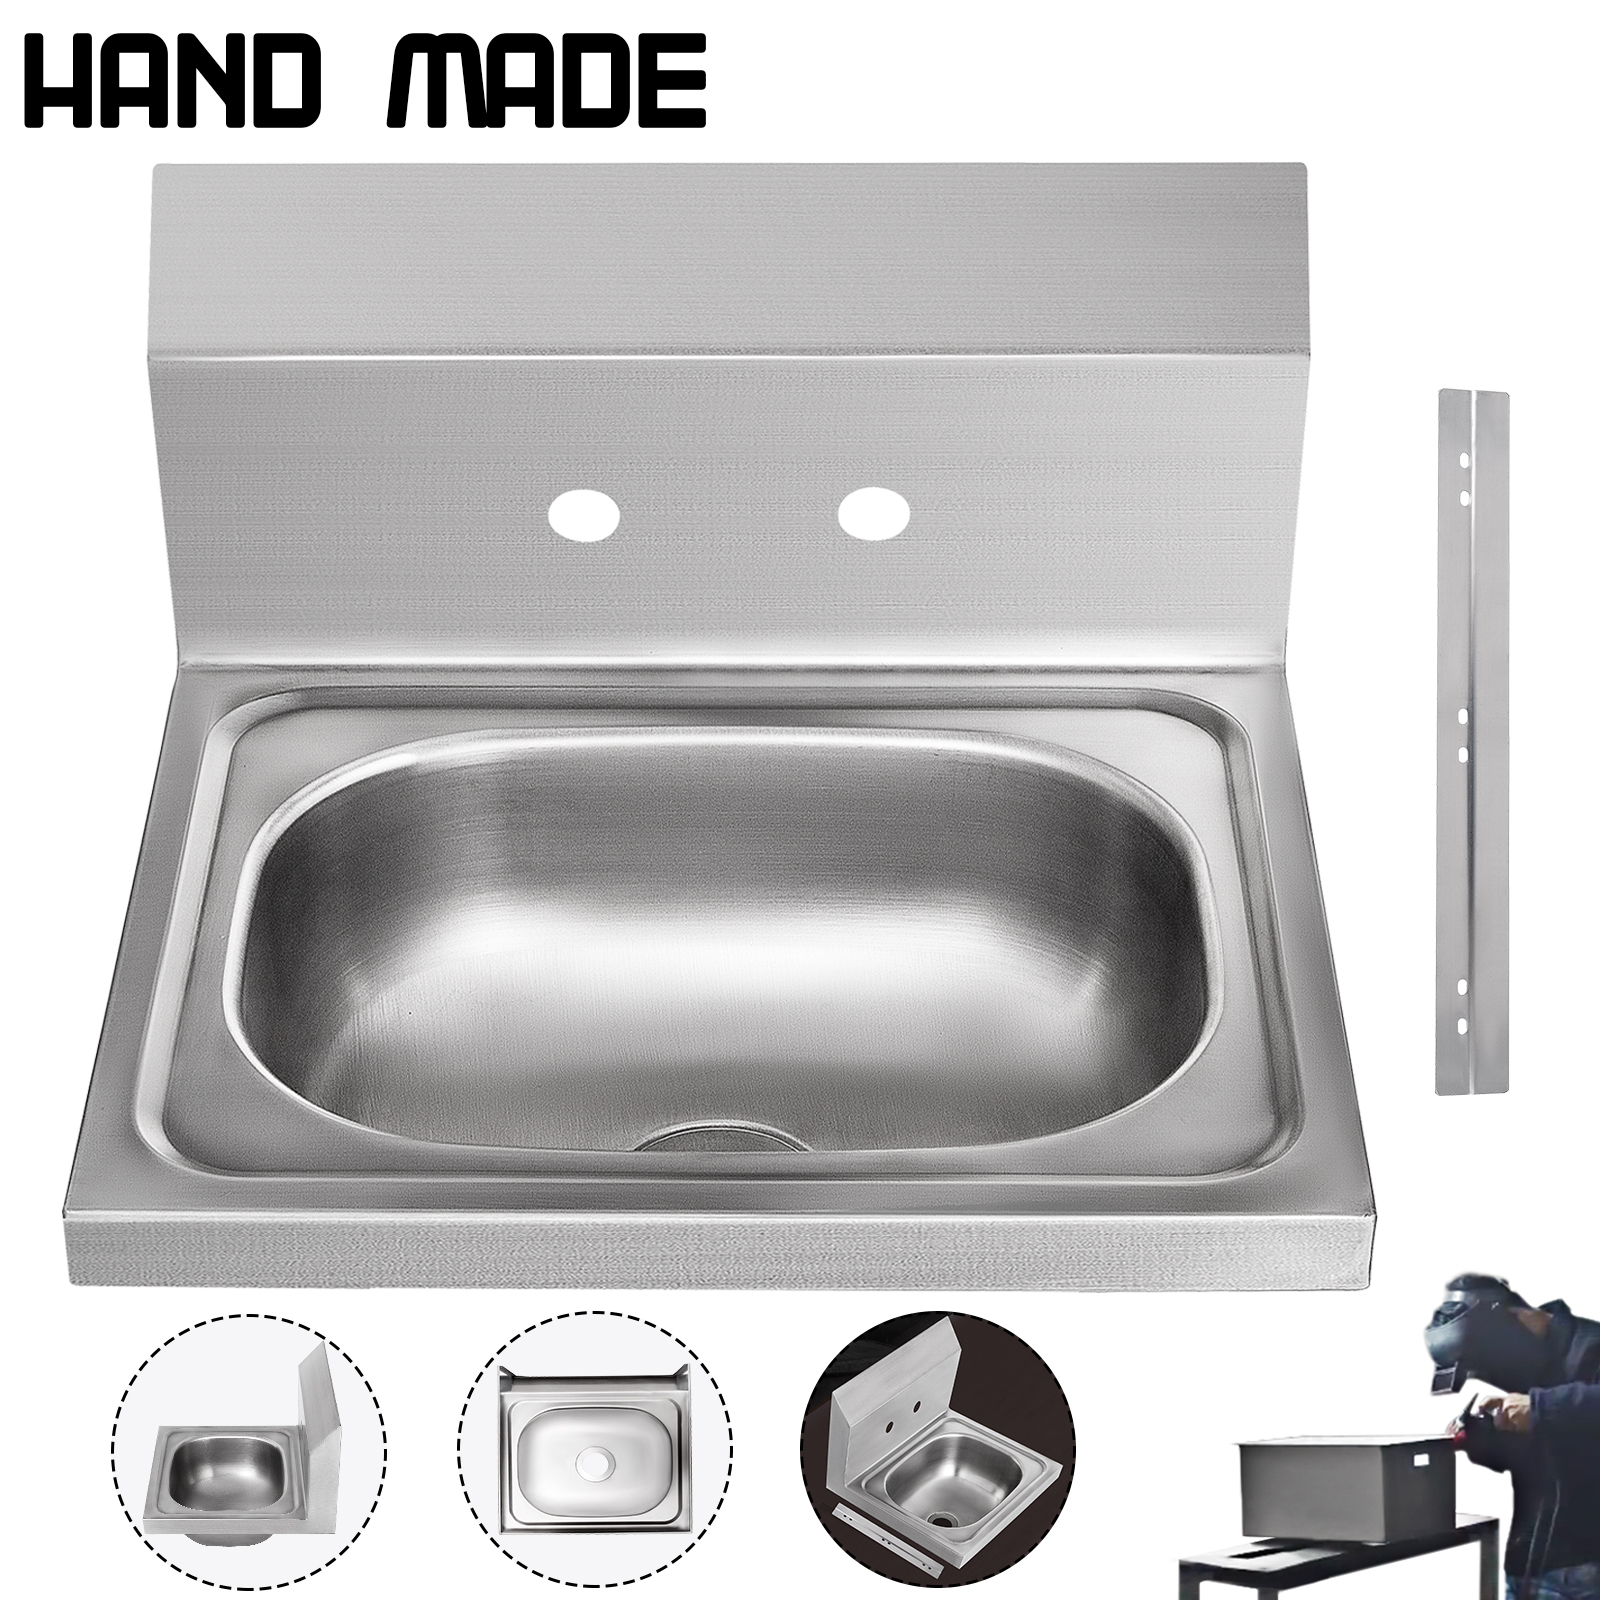 Details about Commercial Wall Mount Kitchen Sink Handmade Washing Sink NSF  Stainless Steel